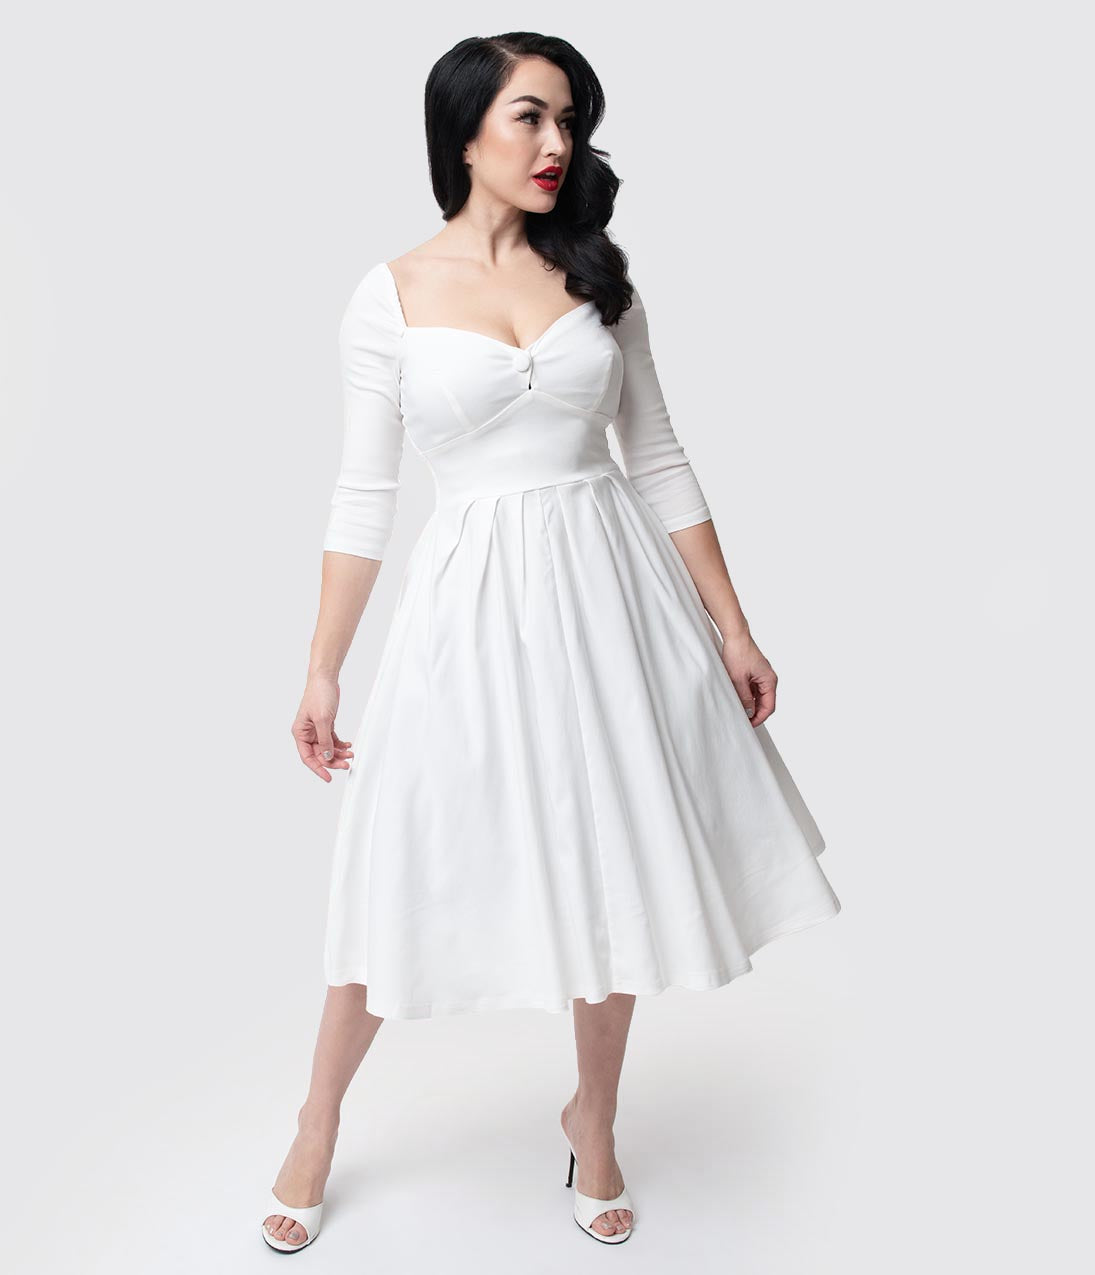 50s Wedding Dress, 1950s Style Wedding Dresses, Rockabilly Weddings Unique Vintage 1950S Style Ivory Bengaline Sweetheart Lamar Swing Dress $98.00 AT vintagedancer.com